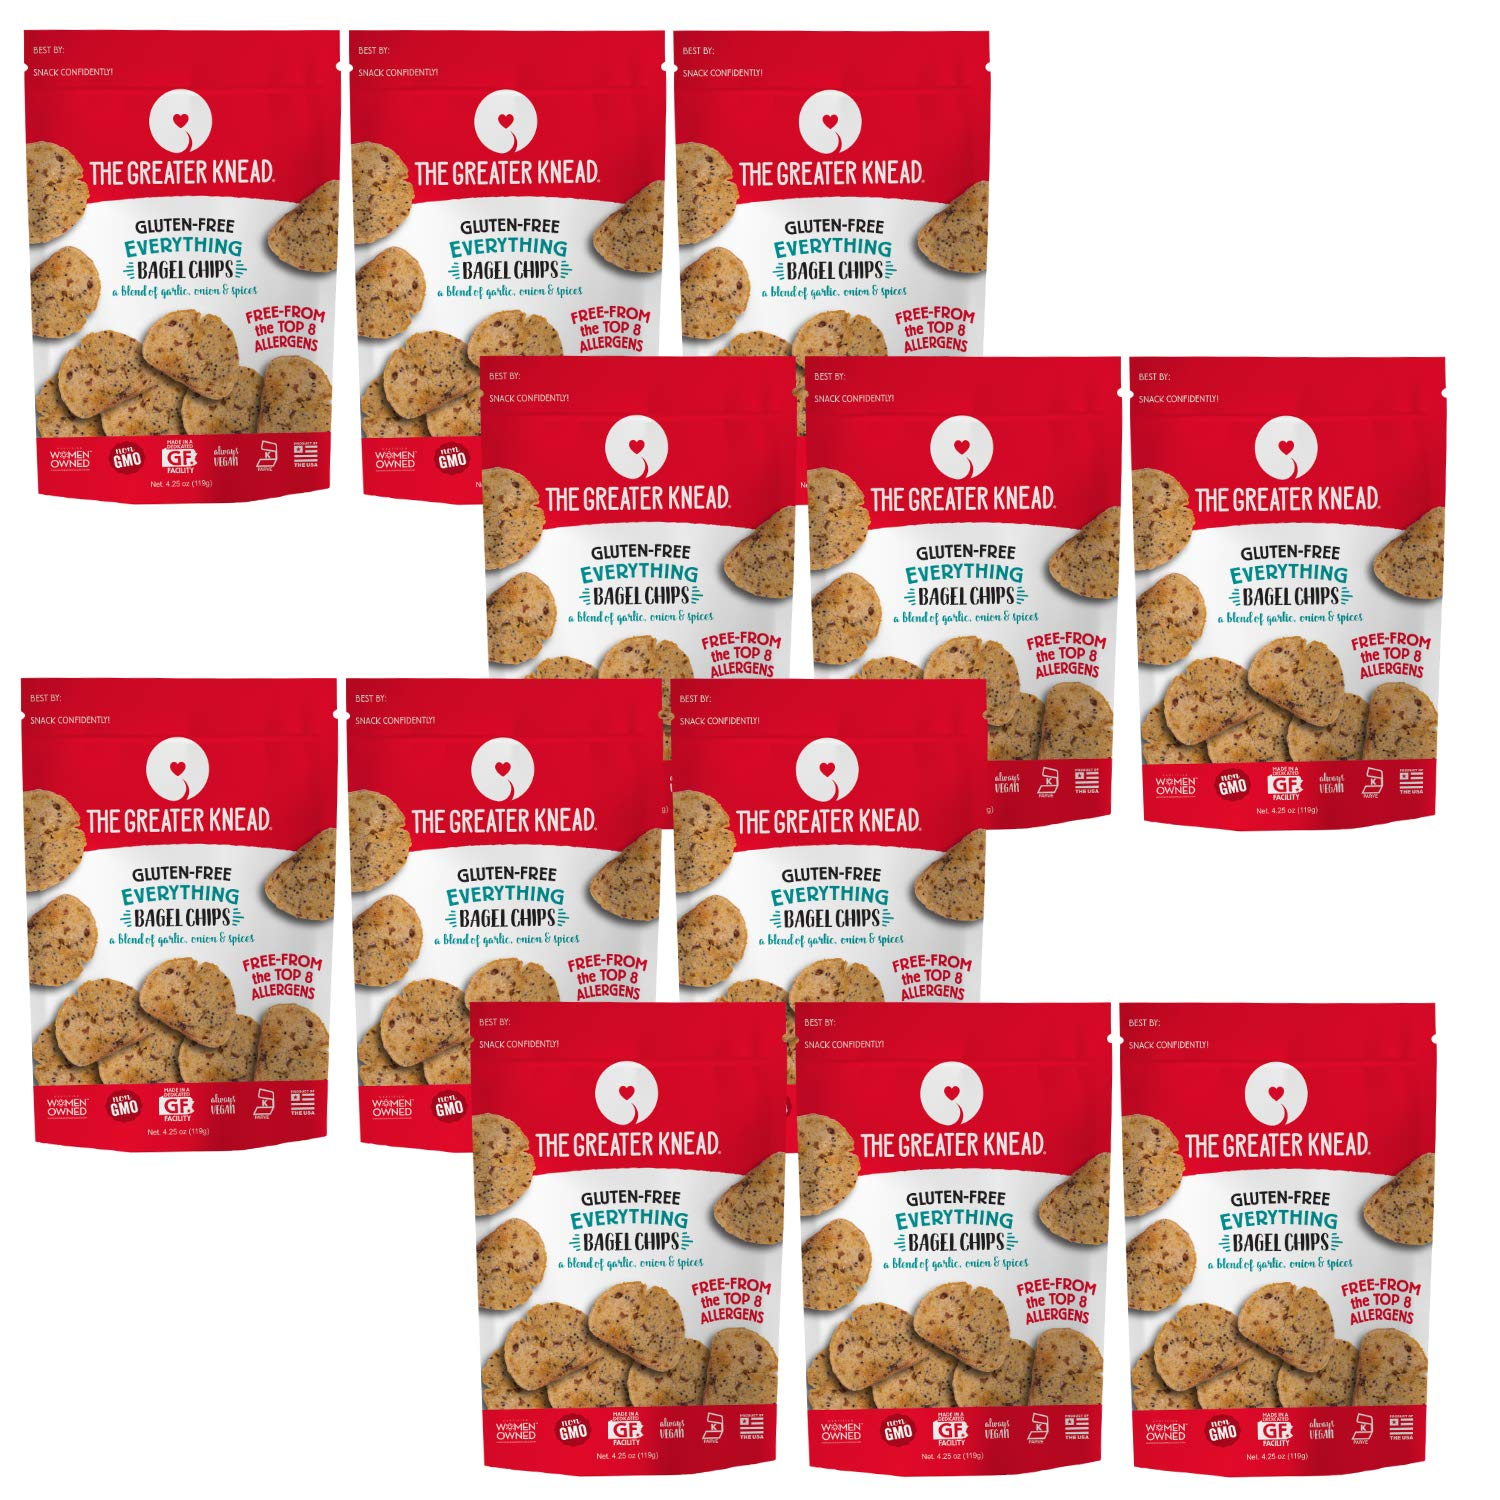 Greater Knead Gluten Free Bagel Chips - Everything, Vegan, non-GMO, Free of Wheat, Nuts, Soy, Peanuts, Tree Nuts (12 packs) by The Greater Knead